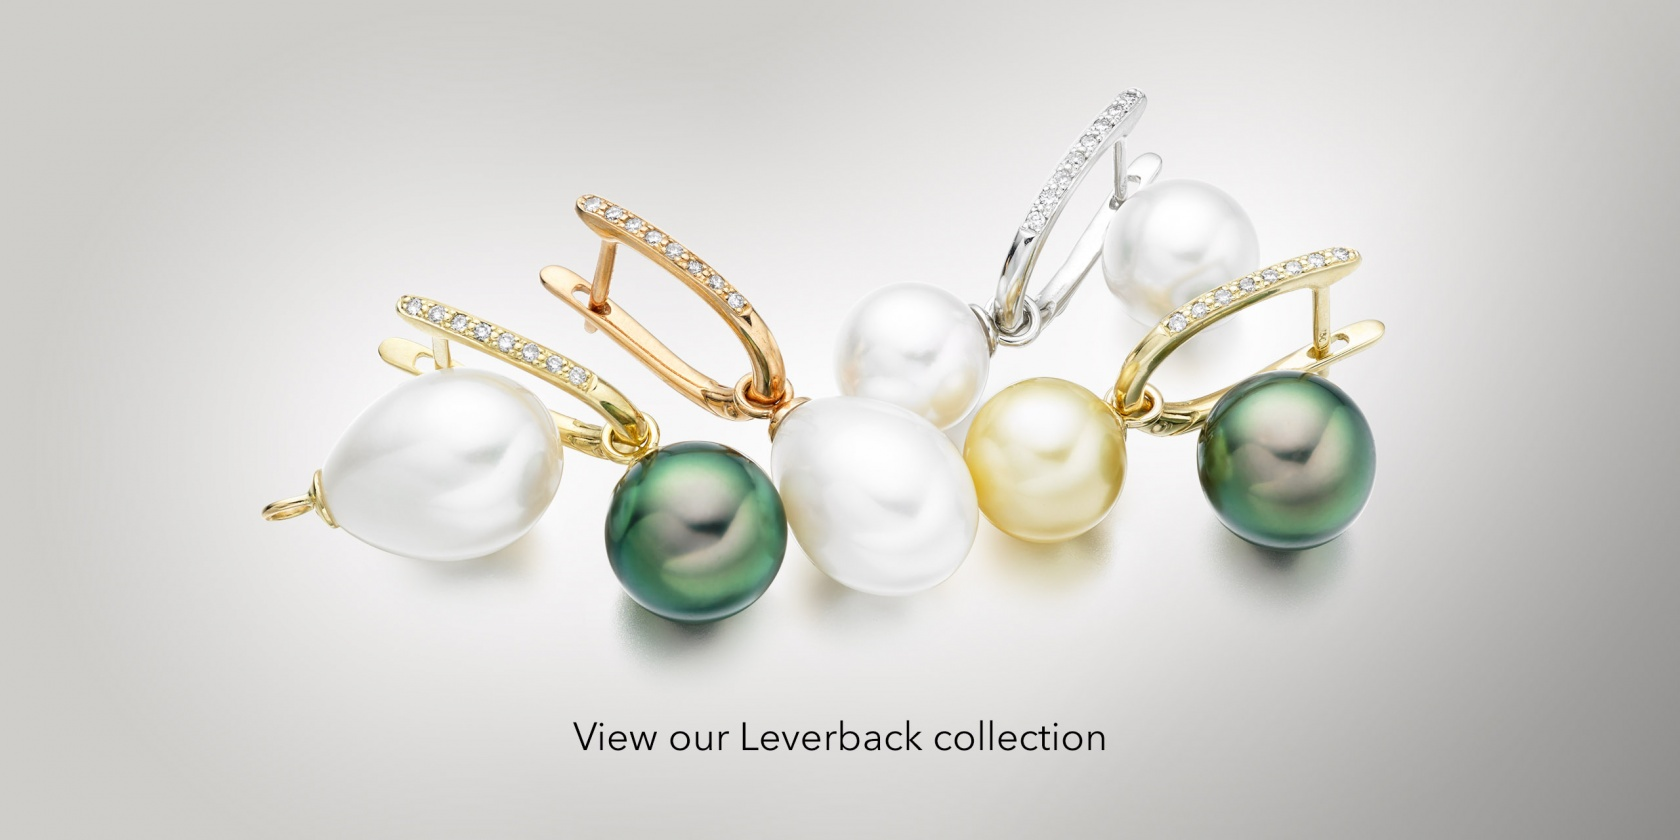 Shop the Leverback Collection